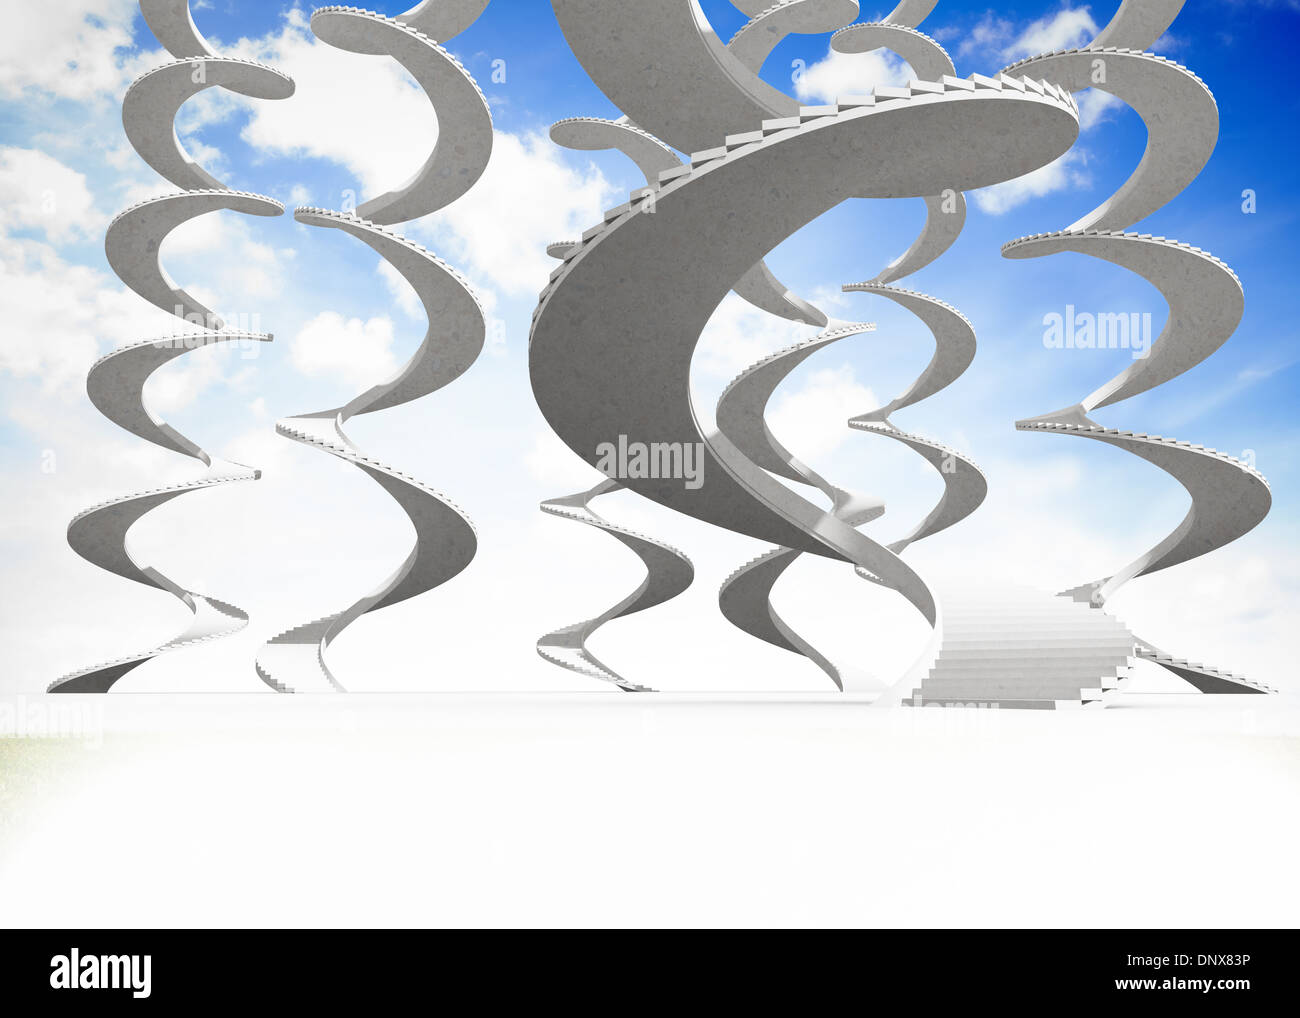 Spiral staircases in the sky - Stock Image